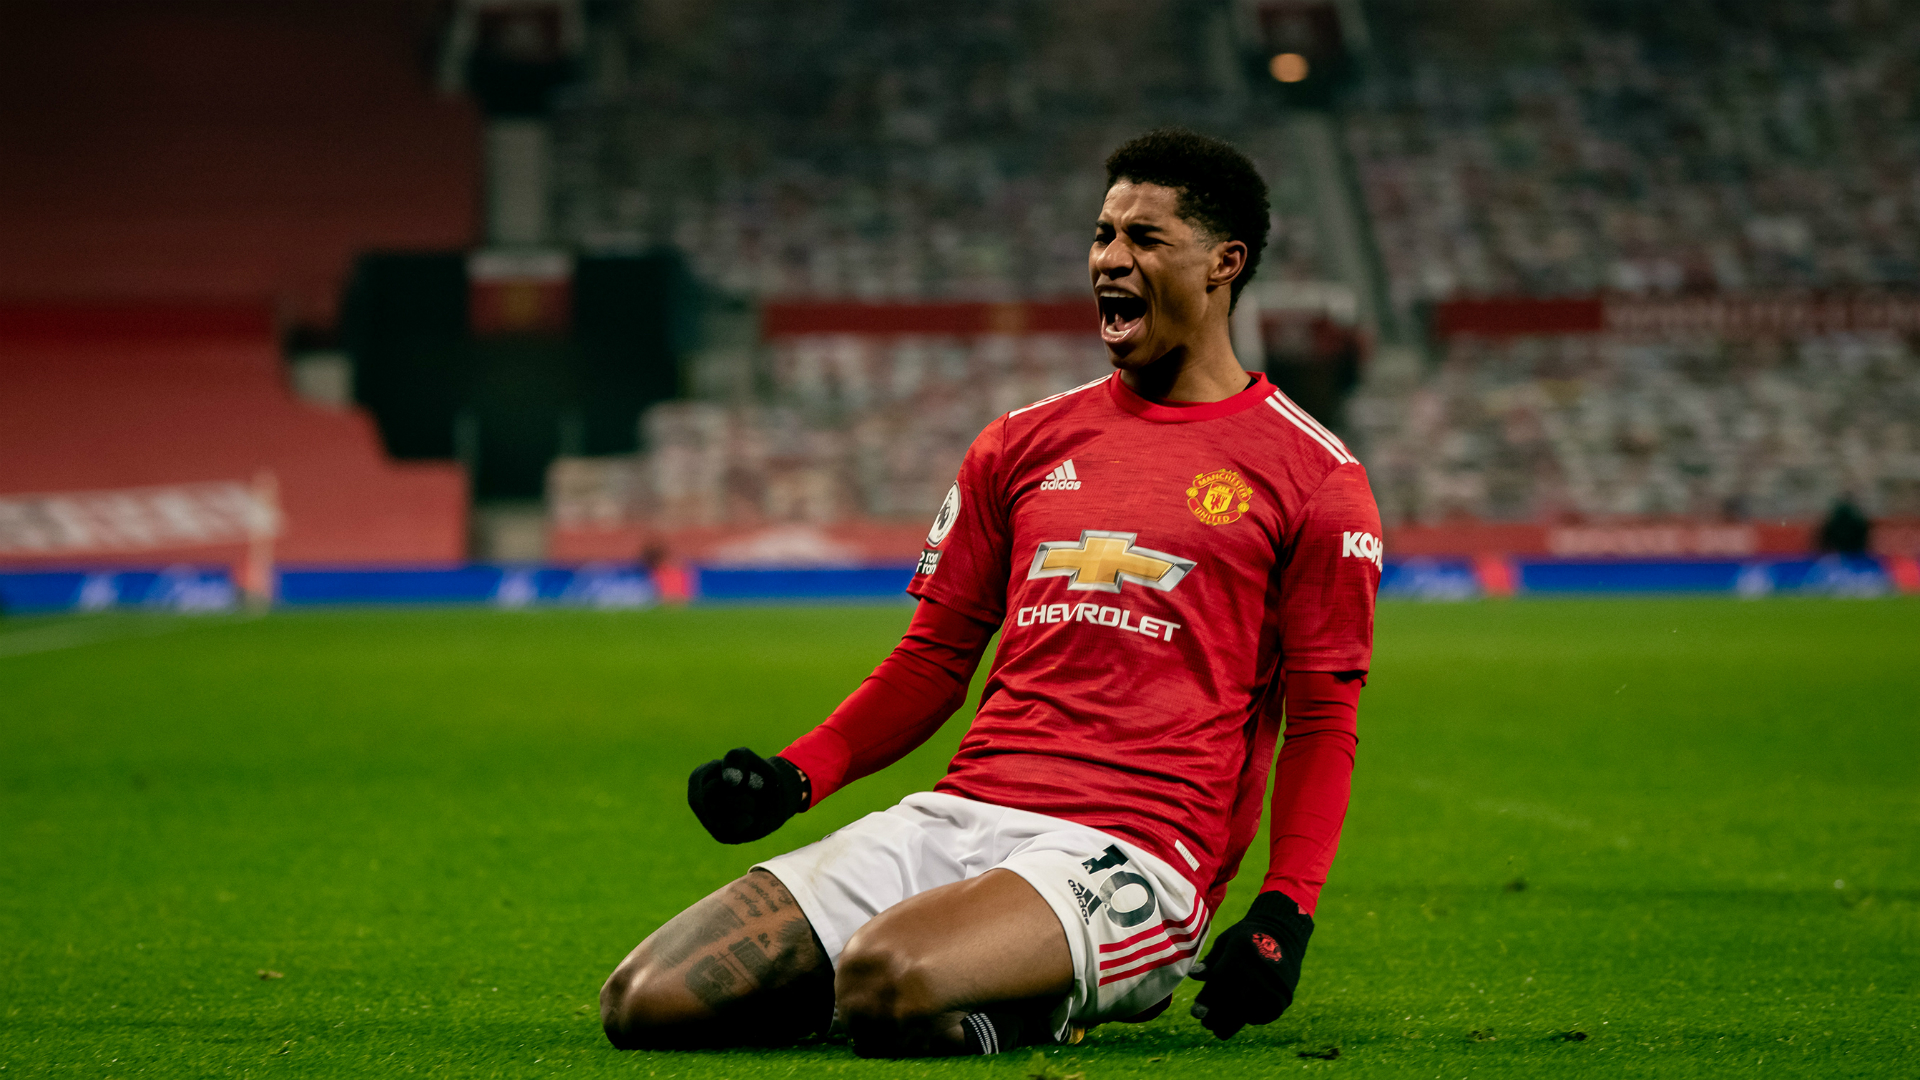 Rashford can improve to be England and Man Utd great, says Robson